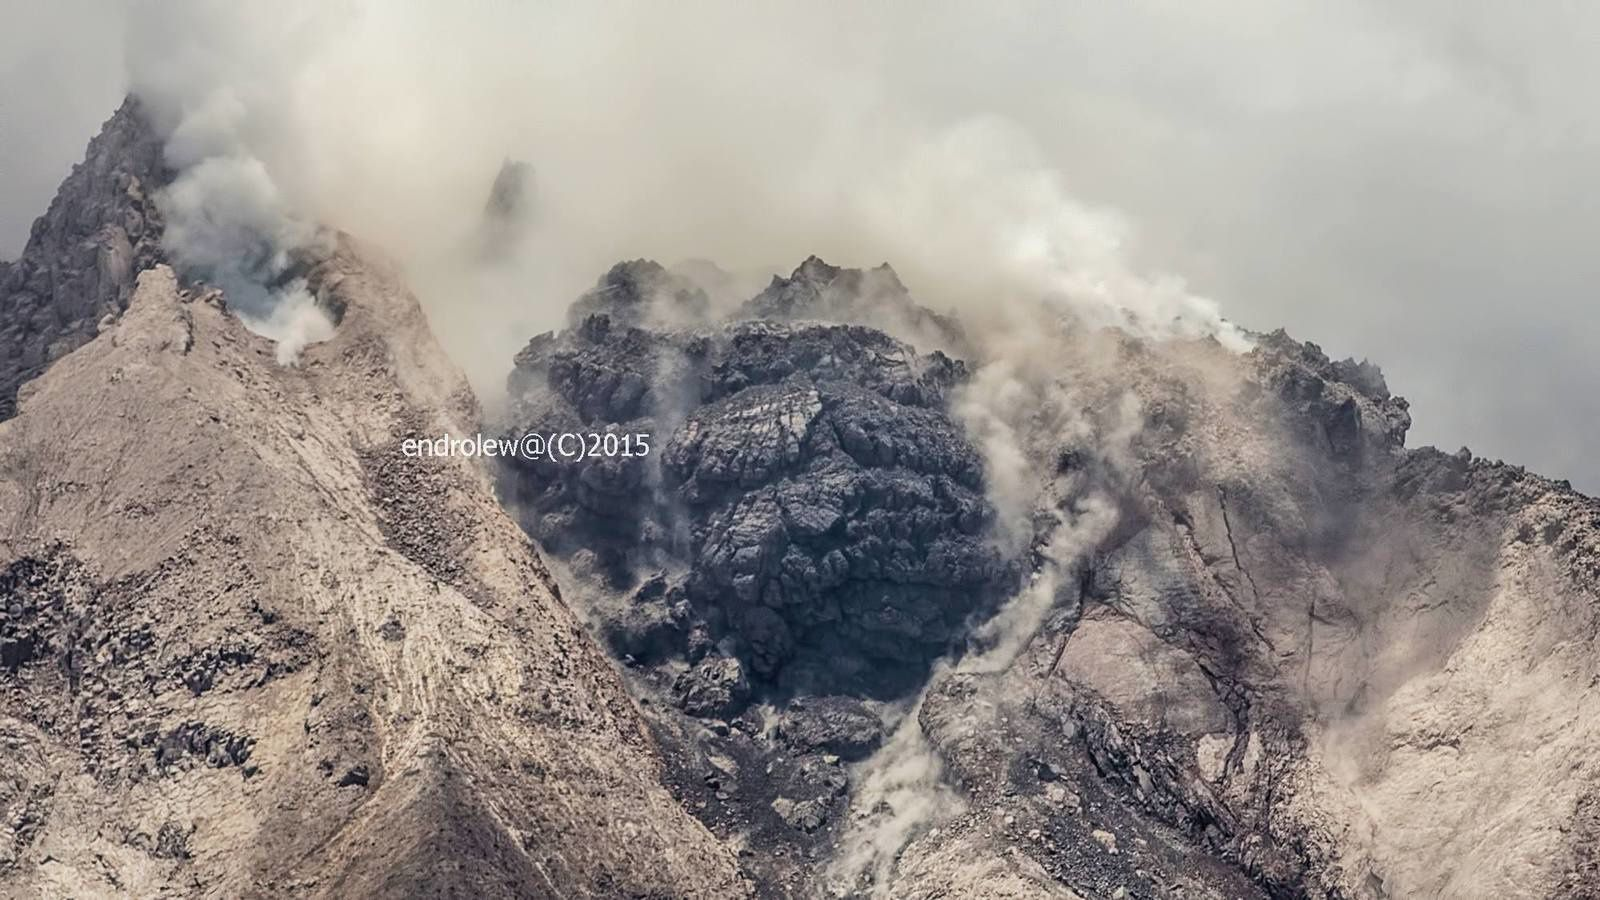 Sinabung - the new lava lobe in manifest imbalance on March 3 / 12:45 - photo endrolew@